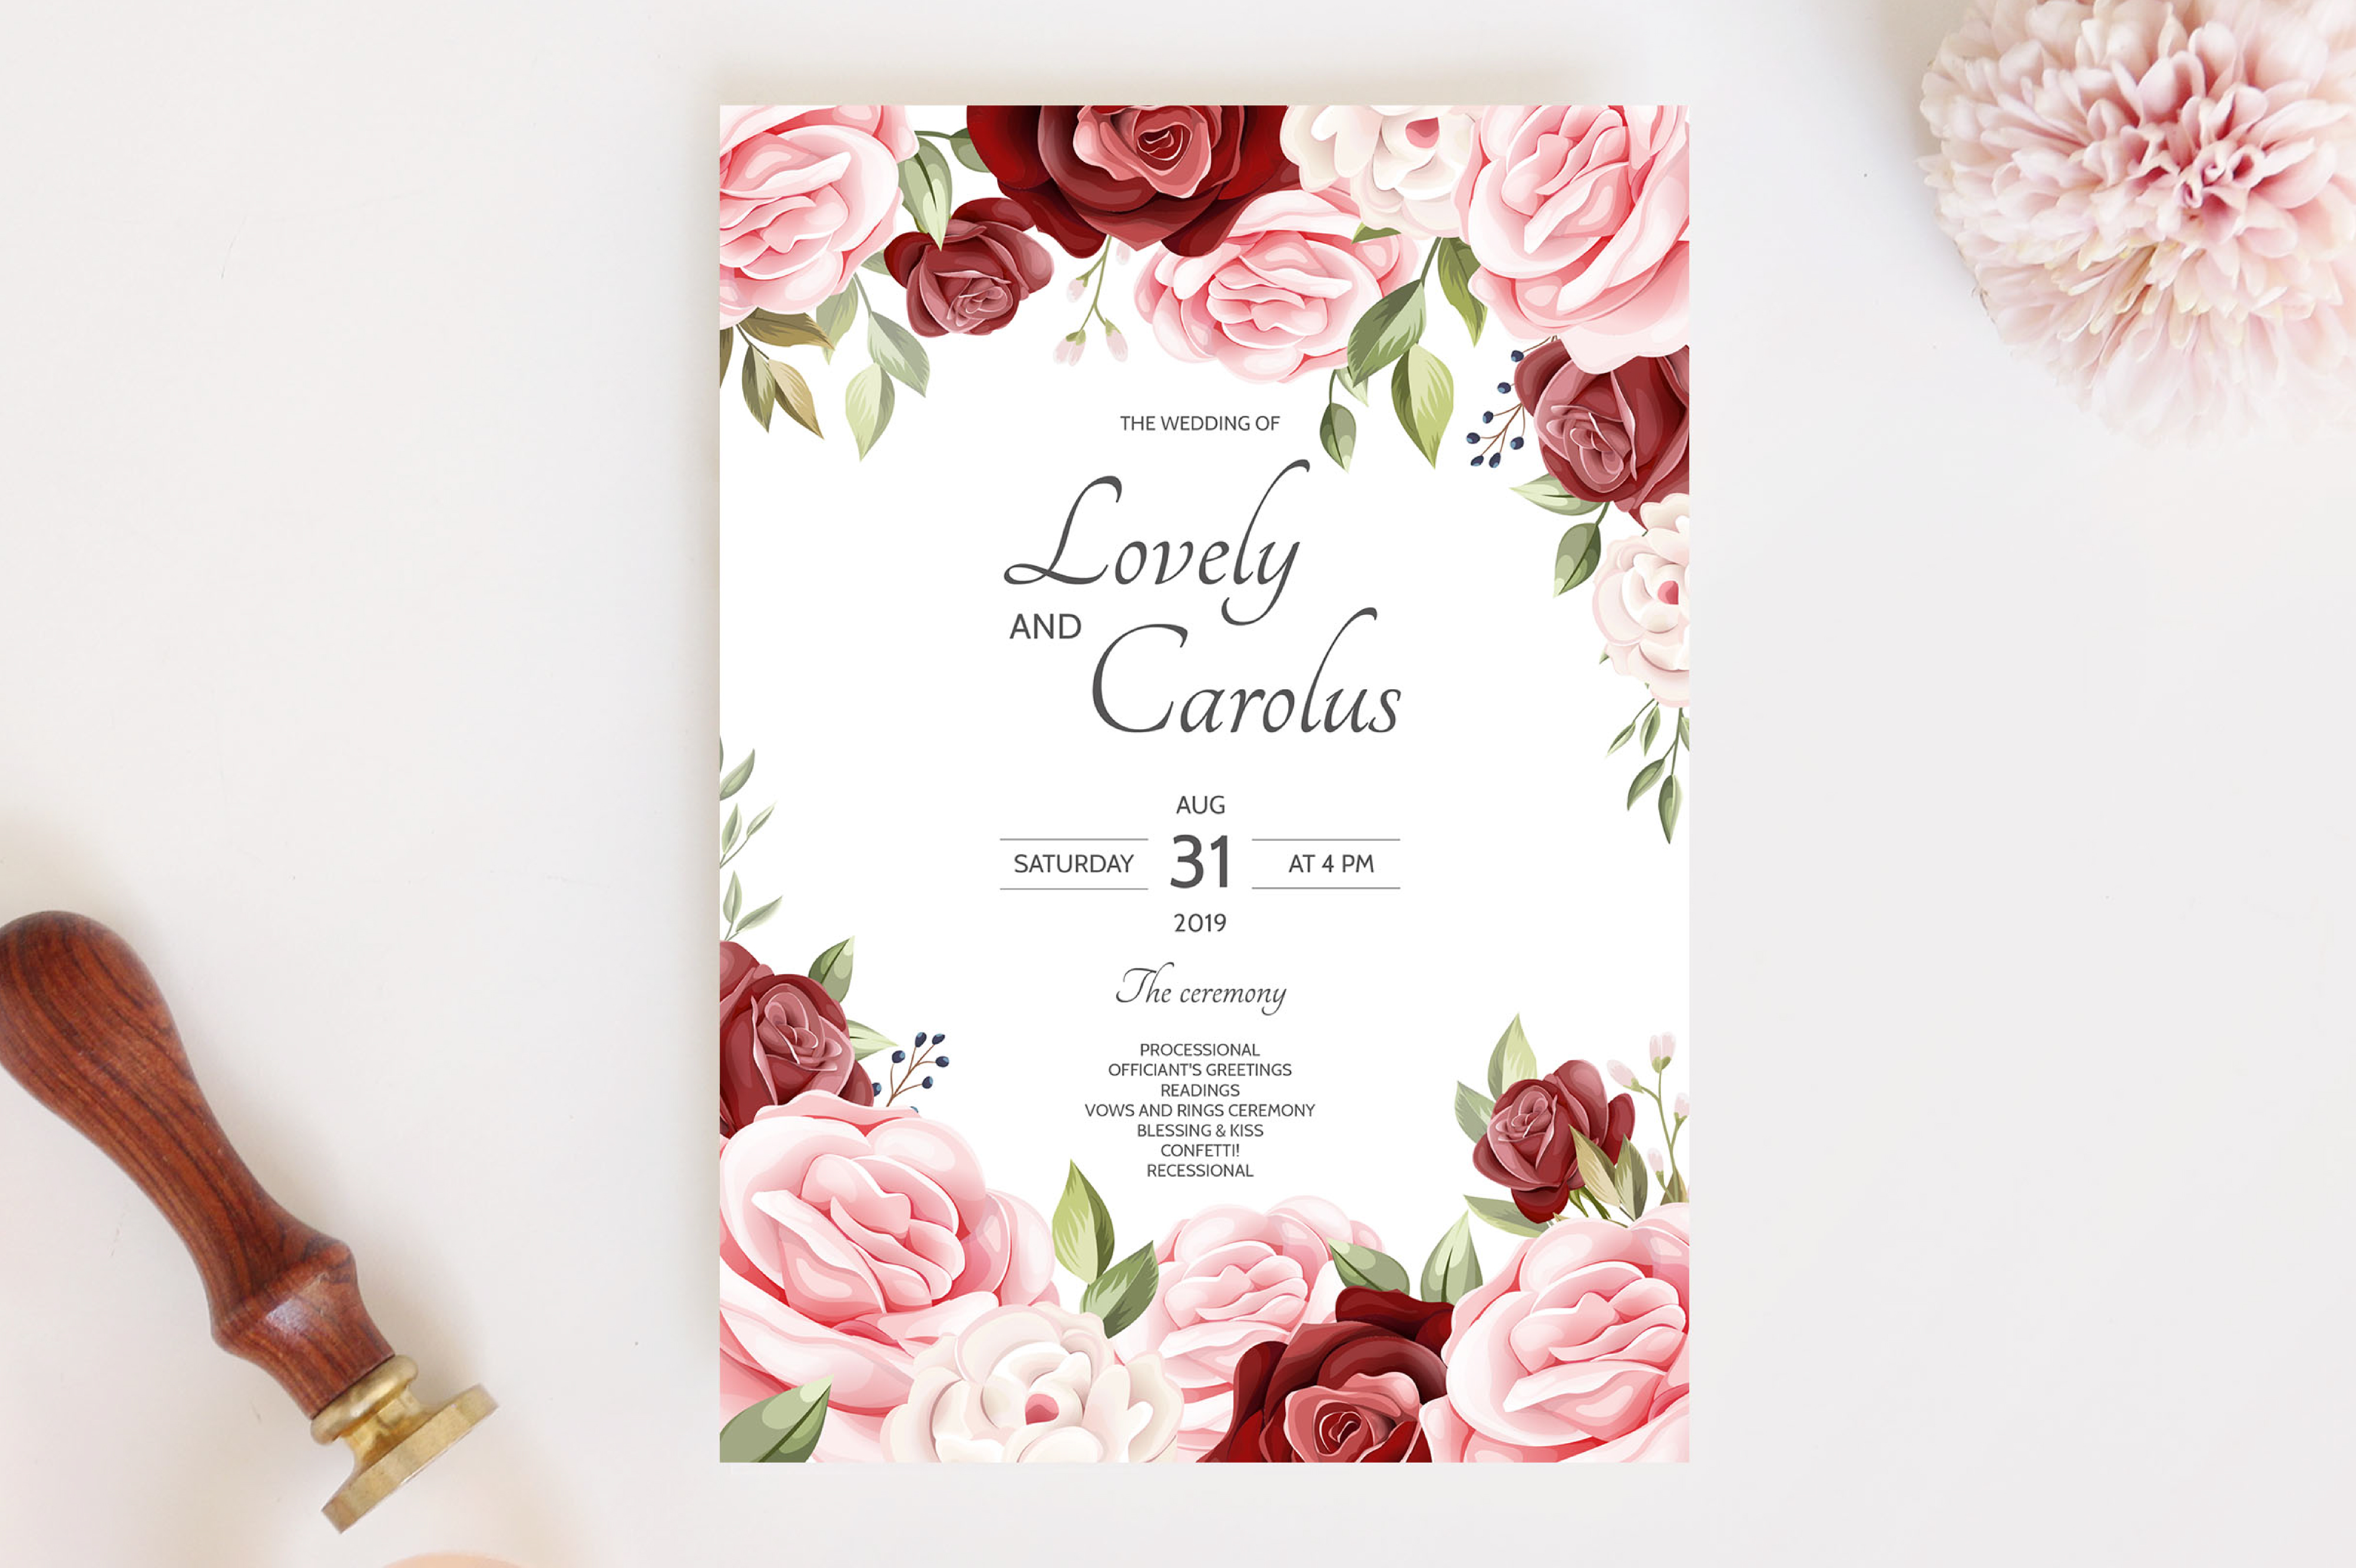 Download Free Wedding Invitation Card Graphic By Dinomikael01 Creative Fabrica for Cricut Explore, Silhouette and other cutting machines.